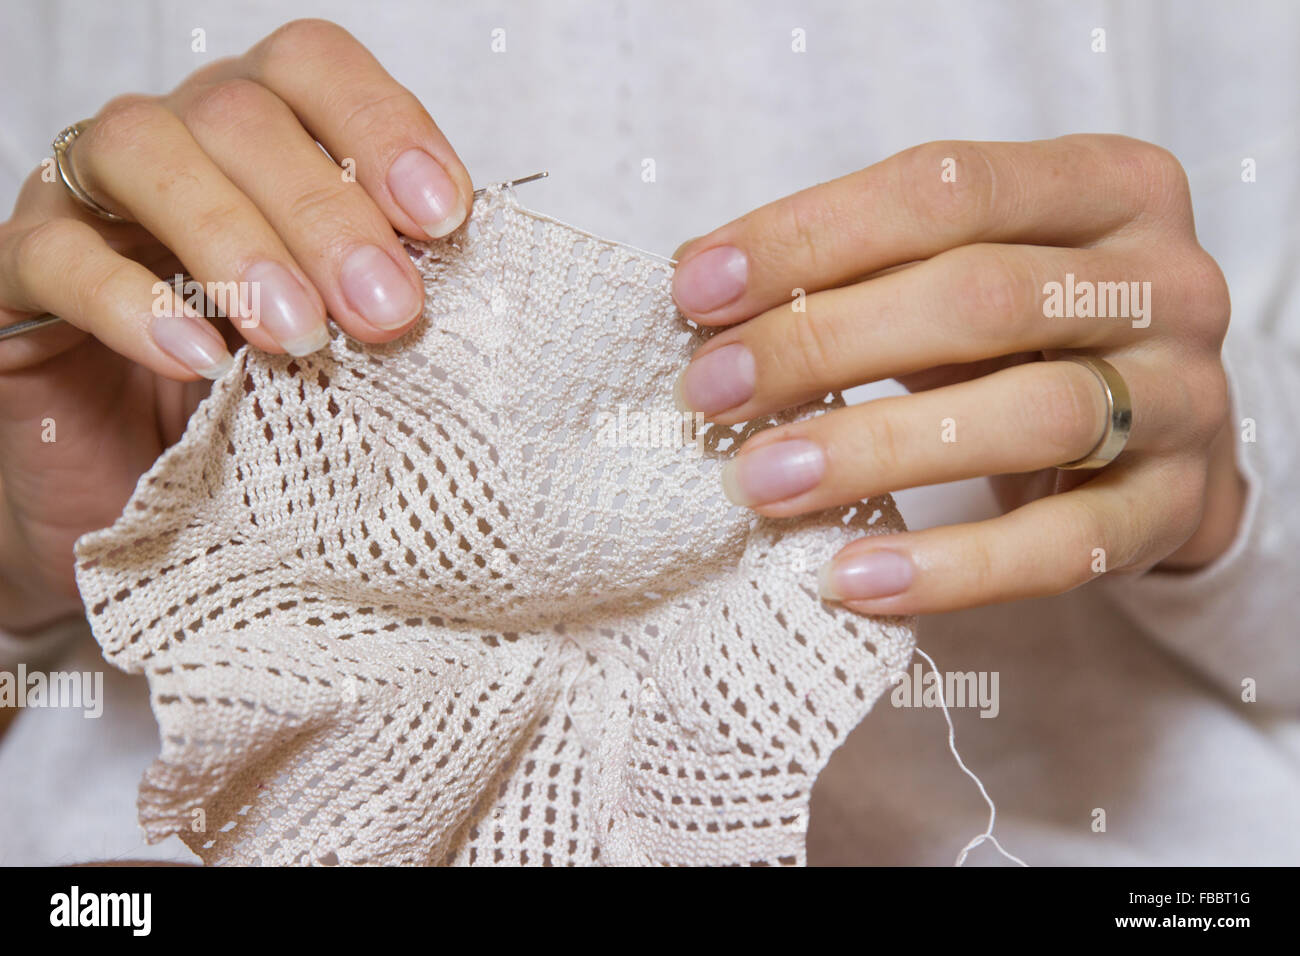 crochet woman crafting making knitting pattern knitted handmade lace detail stitch texture beige yarn openwork hands - Stock Image